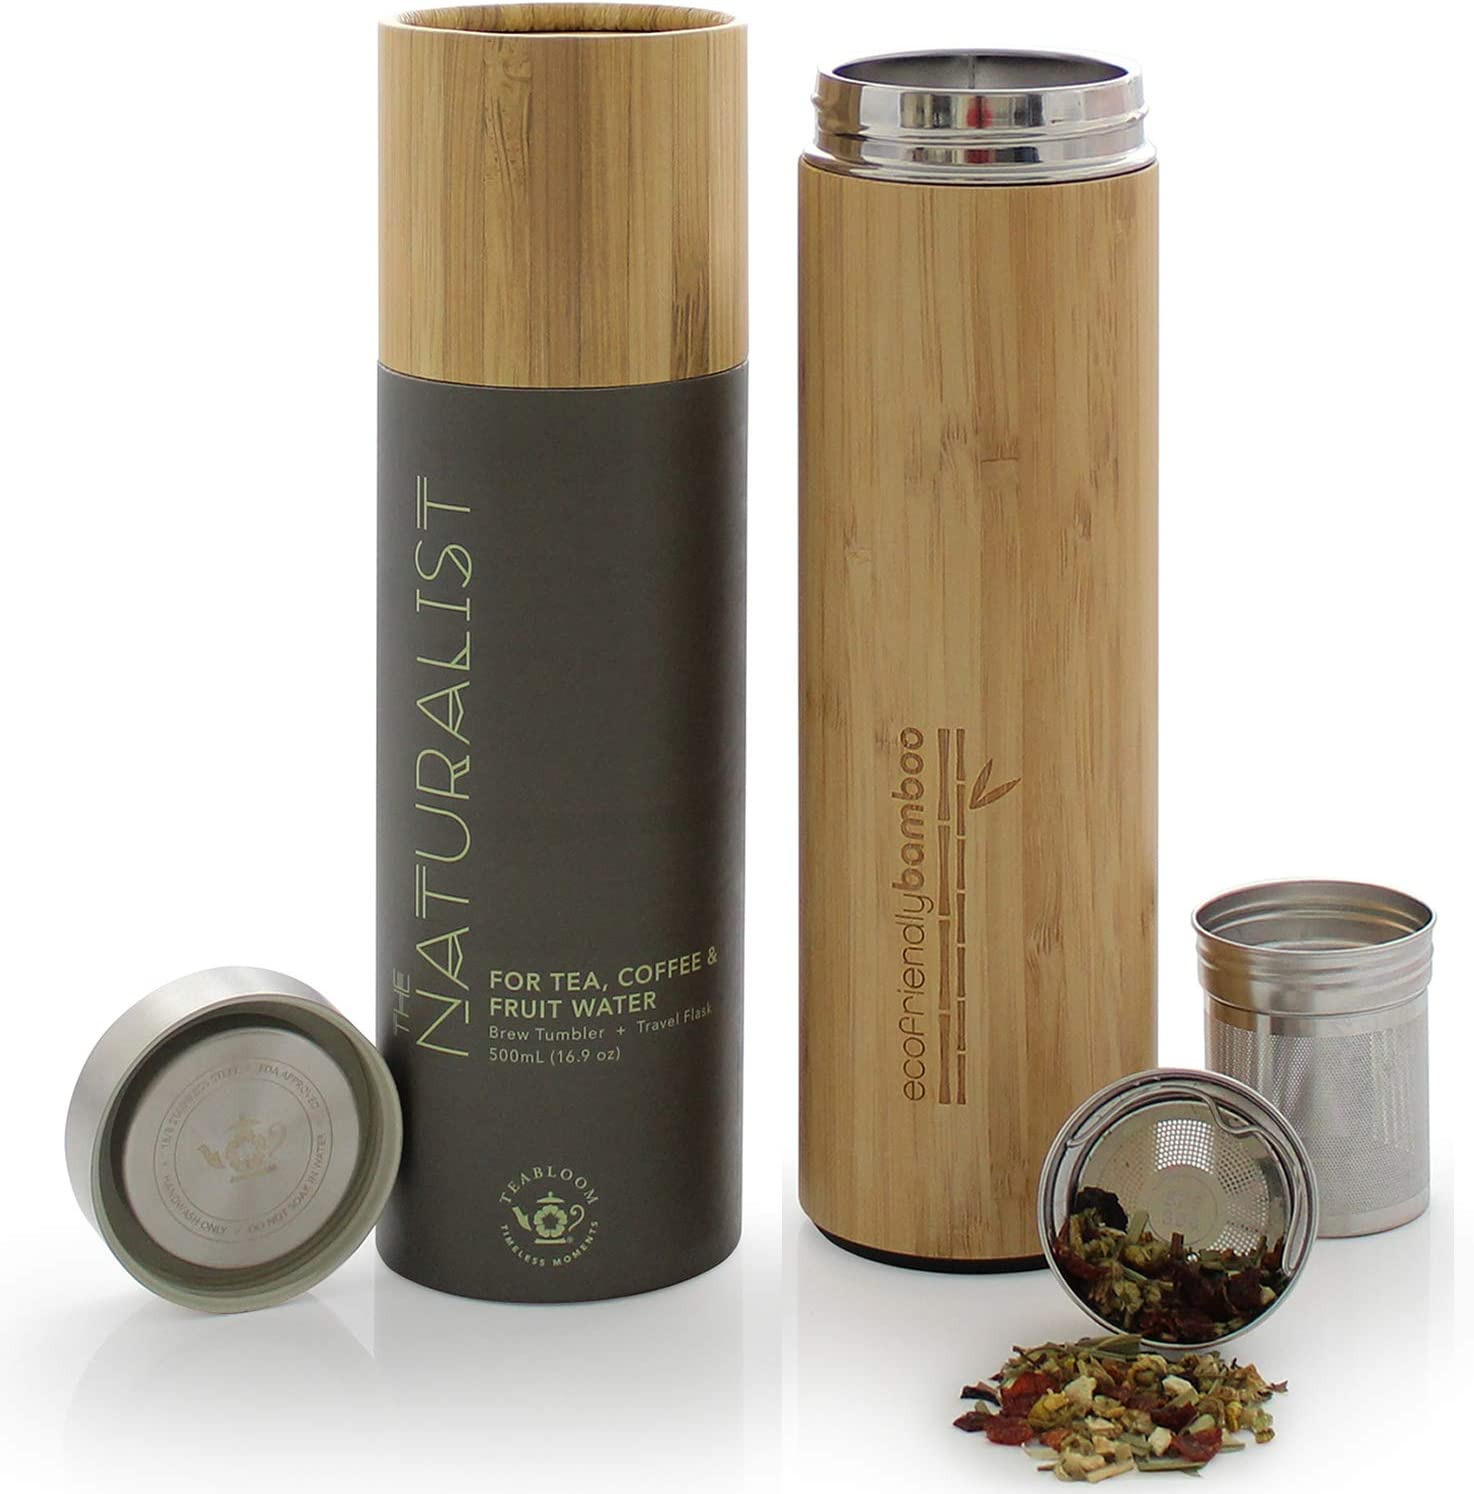 Teabloom All-Beverage Travel Tumbler – Large Capacity 17 oz / 500 ml – Insulated Thermos Mug – Eco-Friendly Bamboo – Hot and Cold Tea Infuser – Cold-Brew Coffee – Fruit-Infused Water – The Naturalist